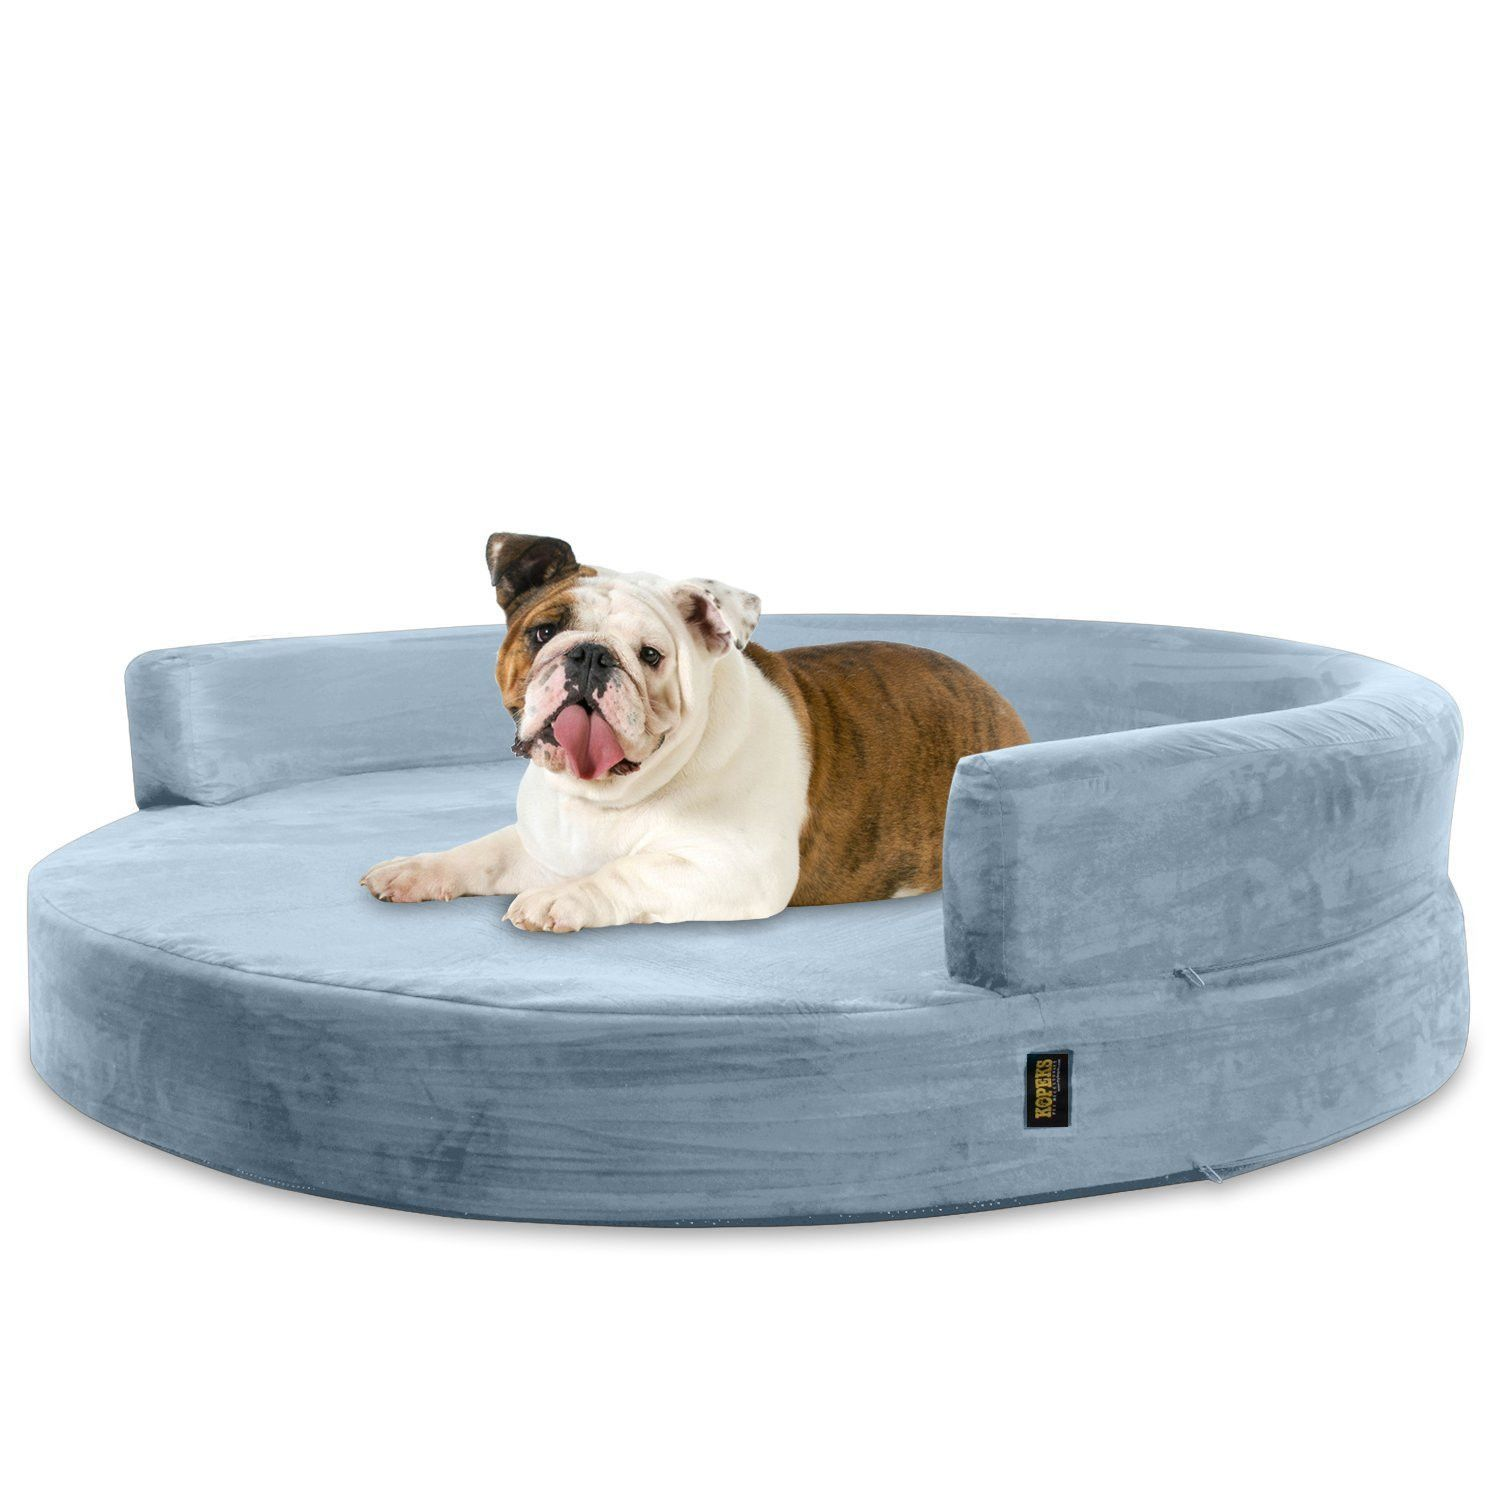 Dog Bed Round Deluxe Orthopedic Memory Foam Sofa Lounge